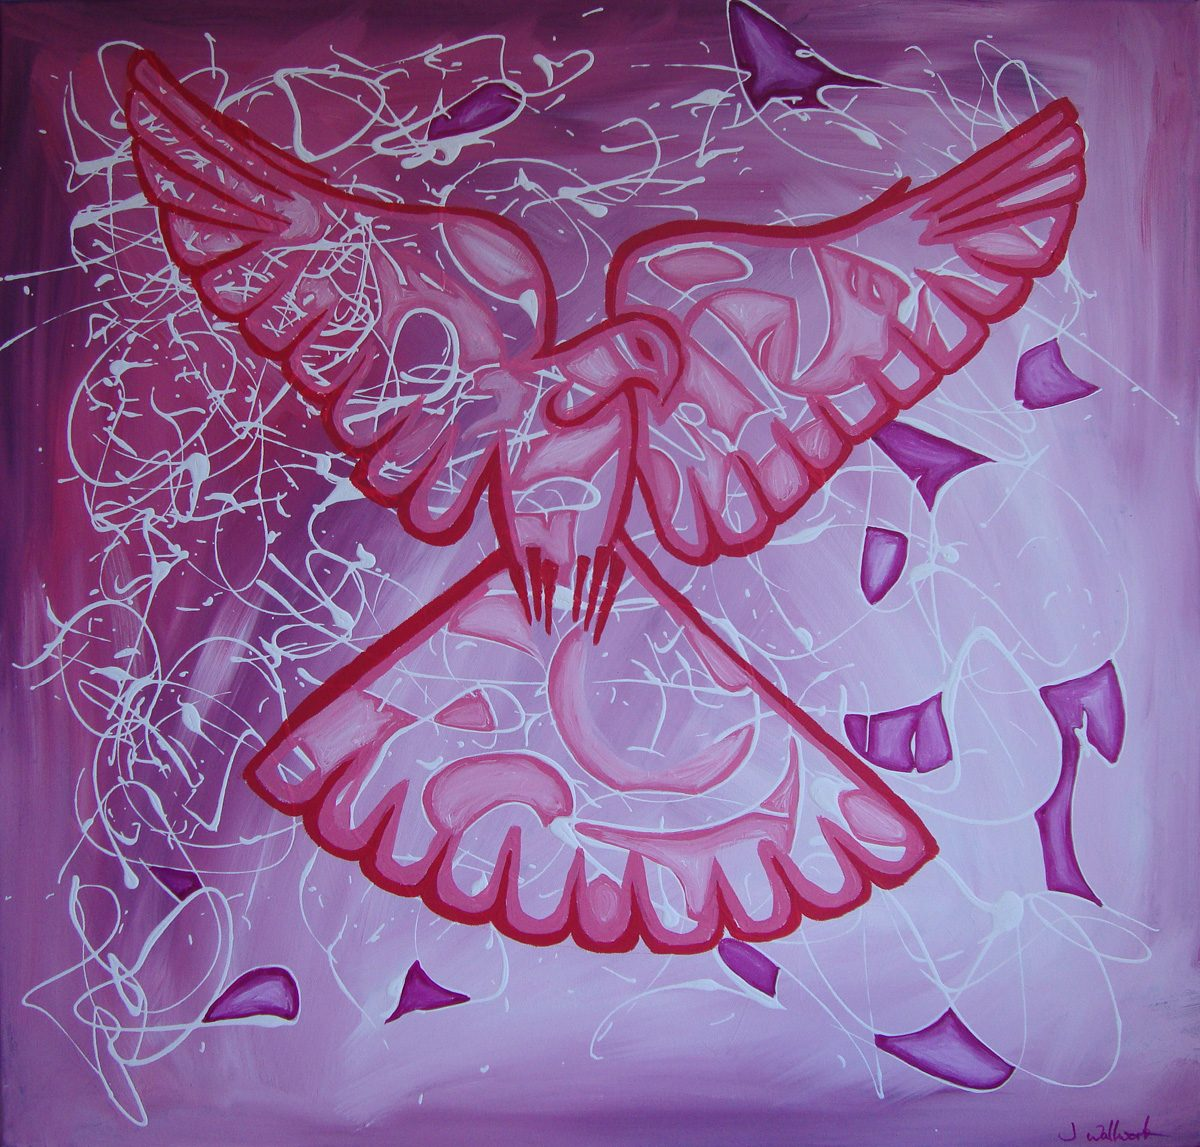 The image shows a piece of artwork by Jina Wallwork. It is a Painting of a dove. Stylistically this piece of artwork has links with expressionism.